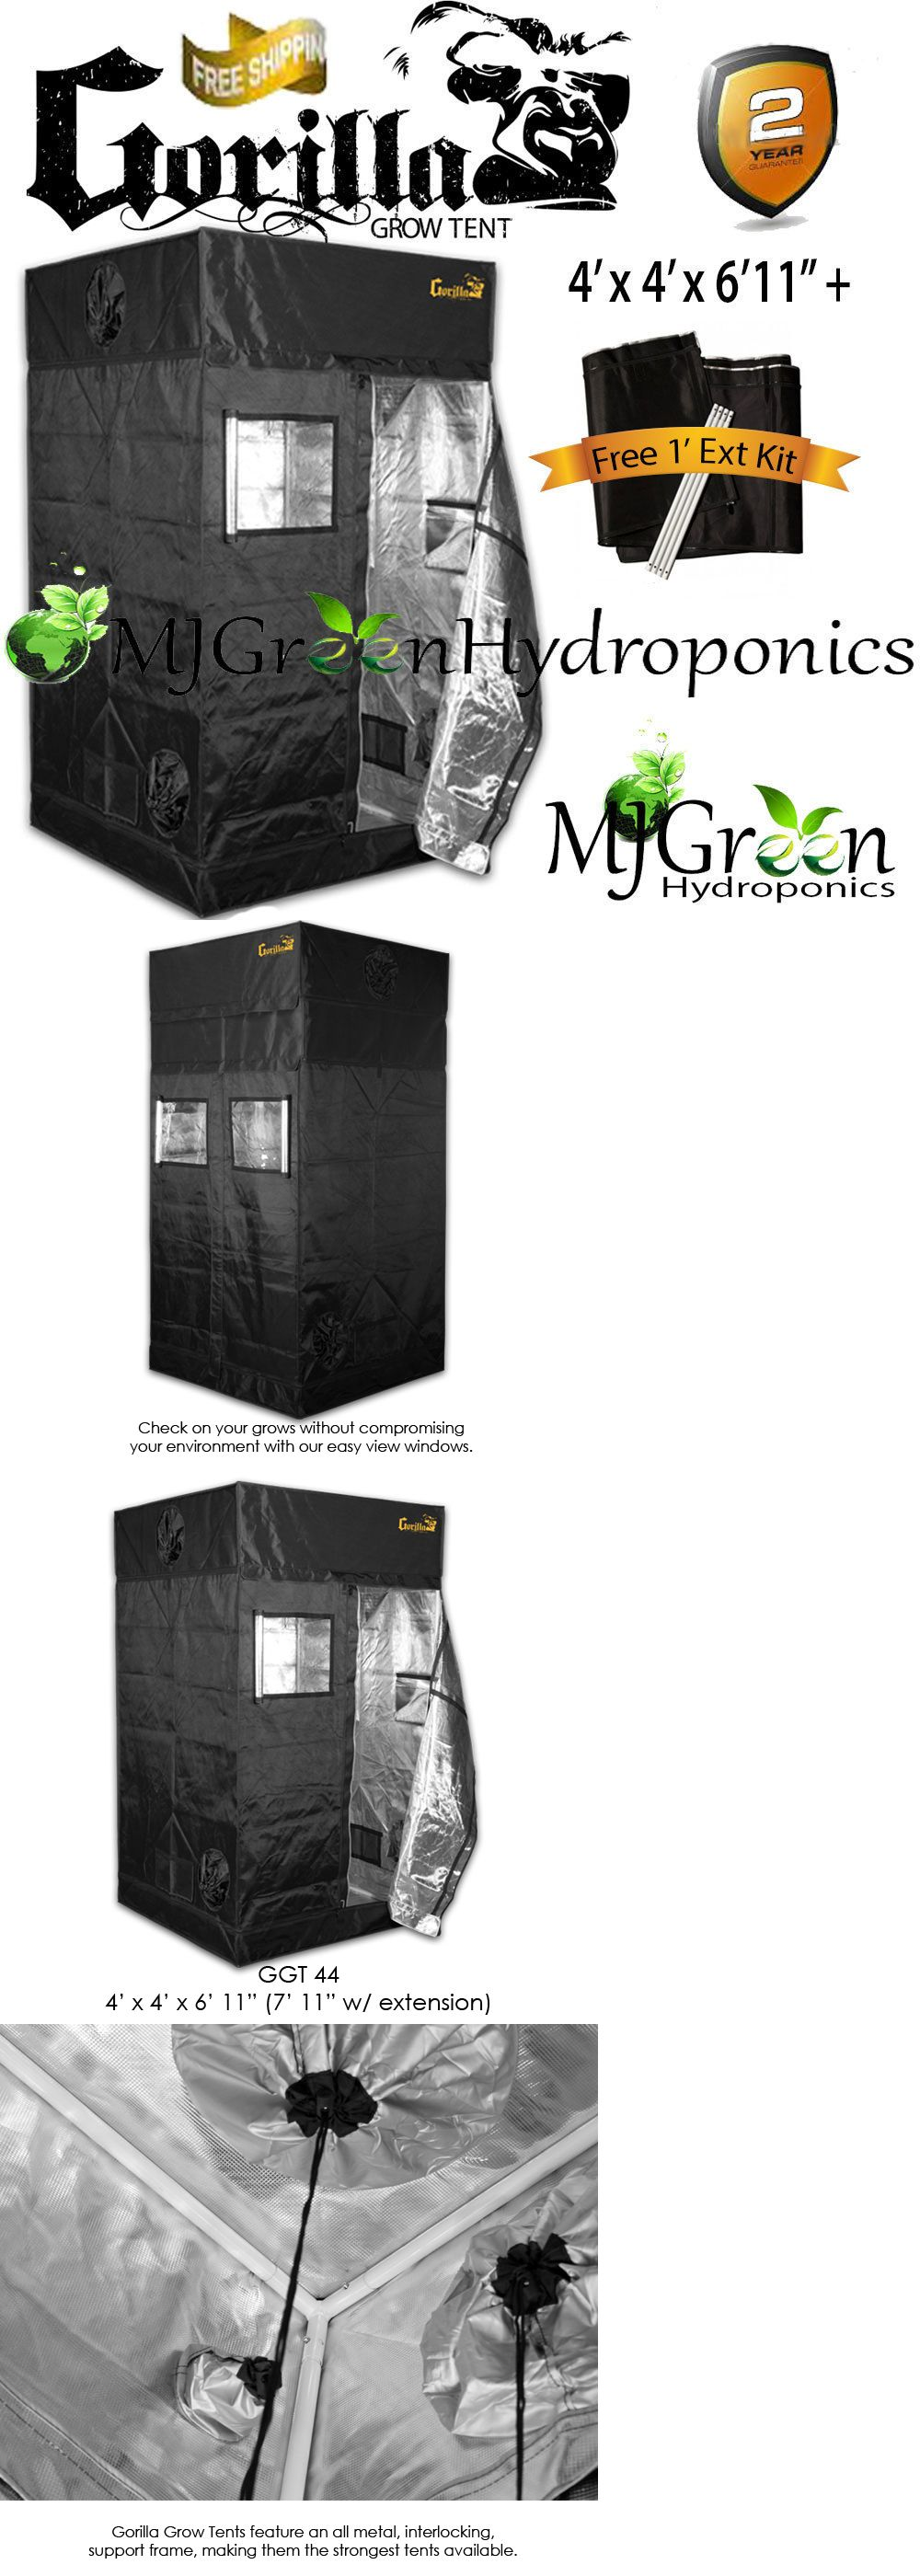 Tents Tarps and Shelves 178993 Gorilla Grow Tent Indoor Grow Tent 4 X 4 X  sc 1 st  Pinterest & Tents Tarps and Shelves 178993: Gorilla Grow Tent Indoor Grow Tent ...